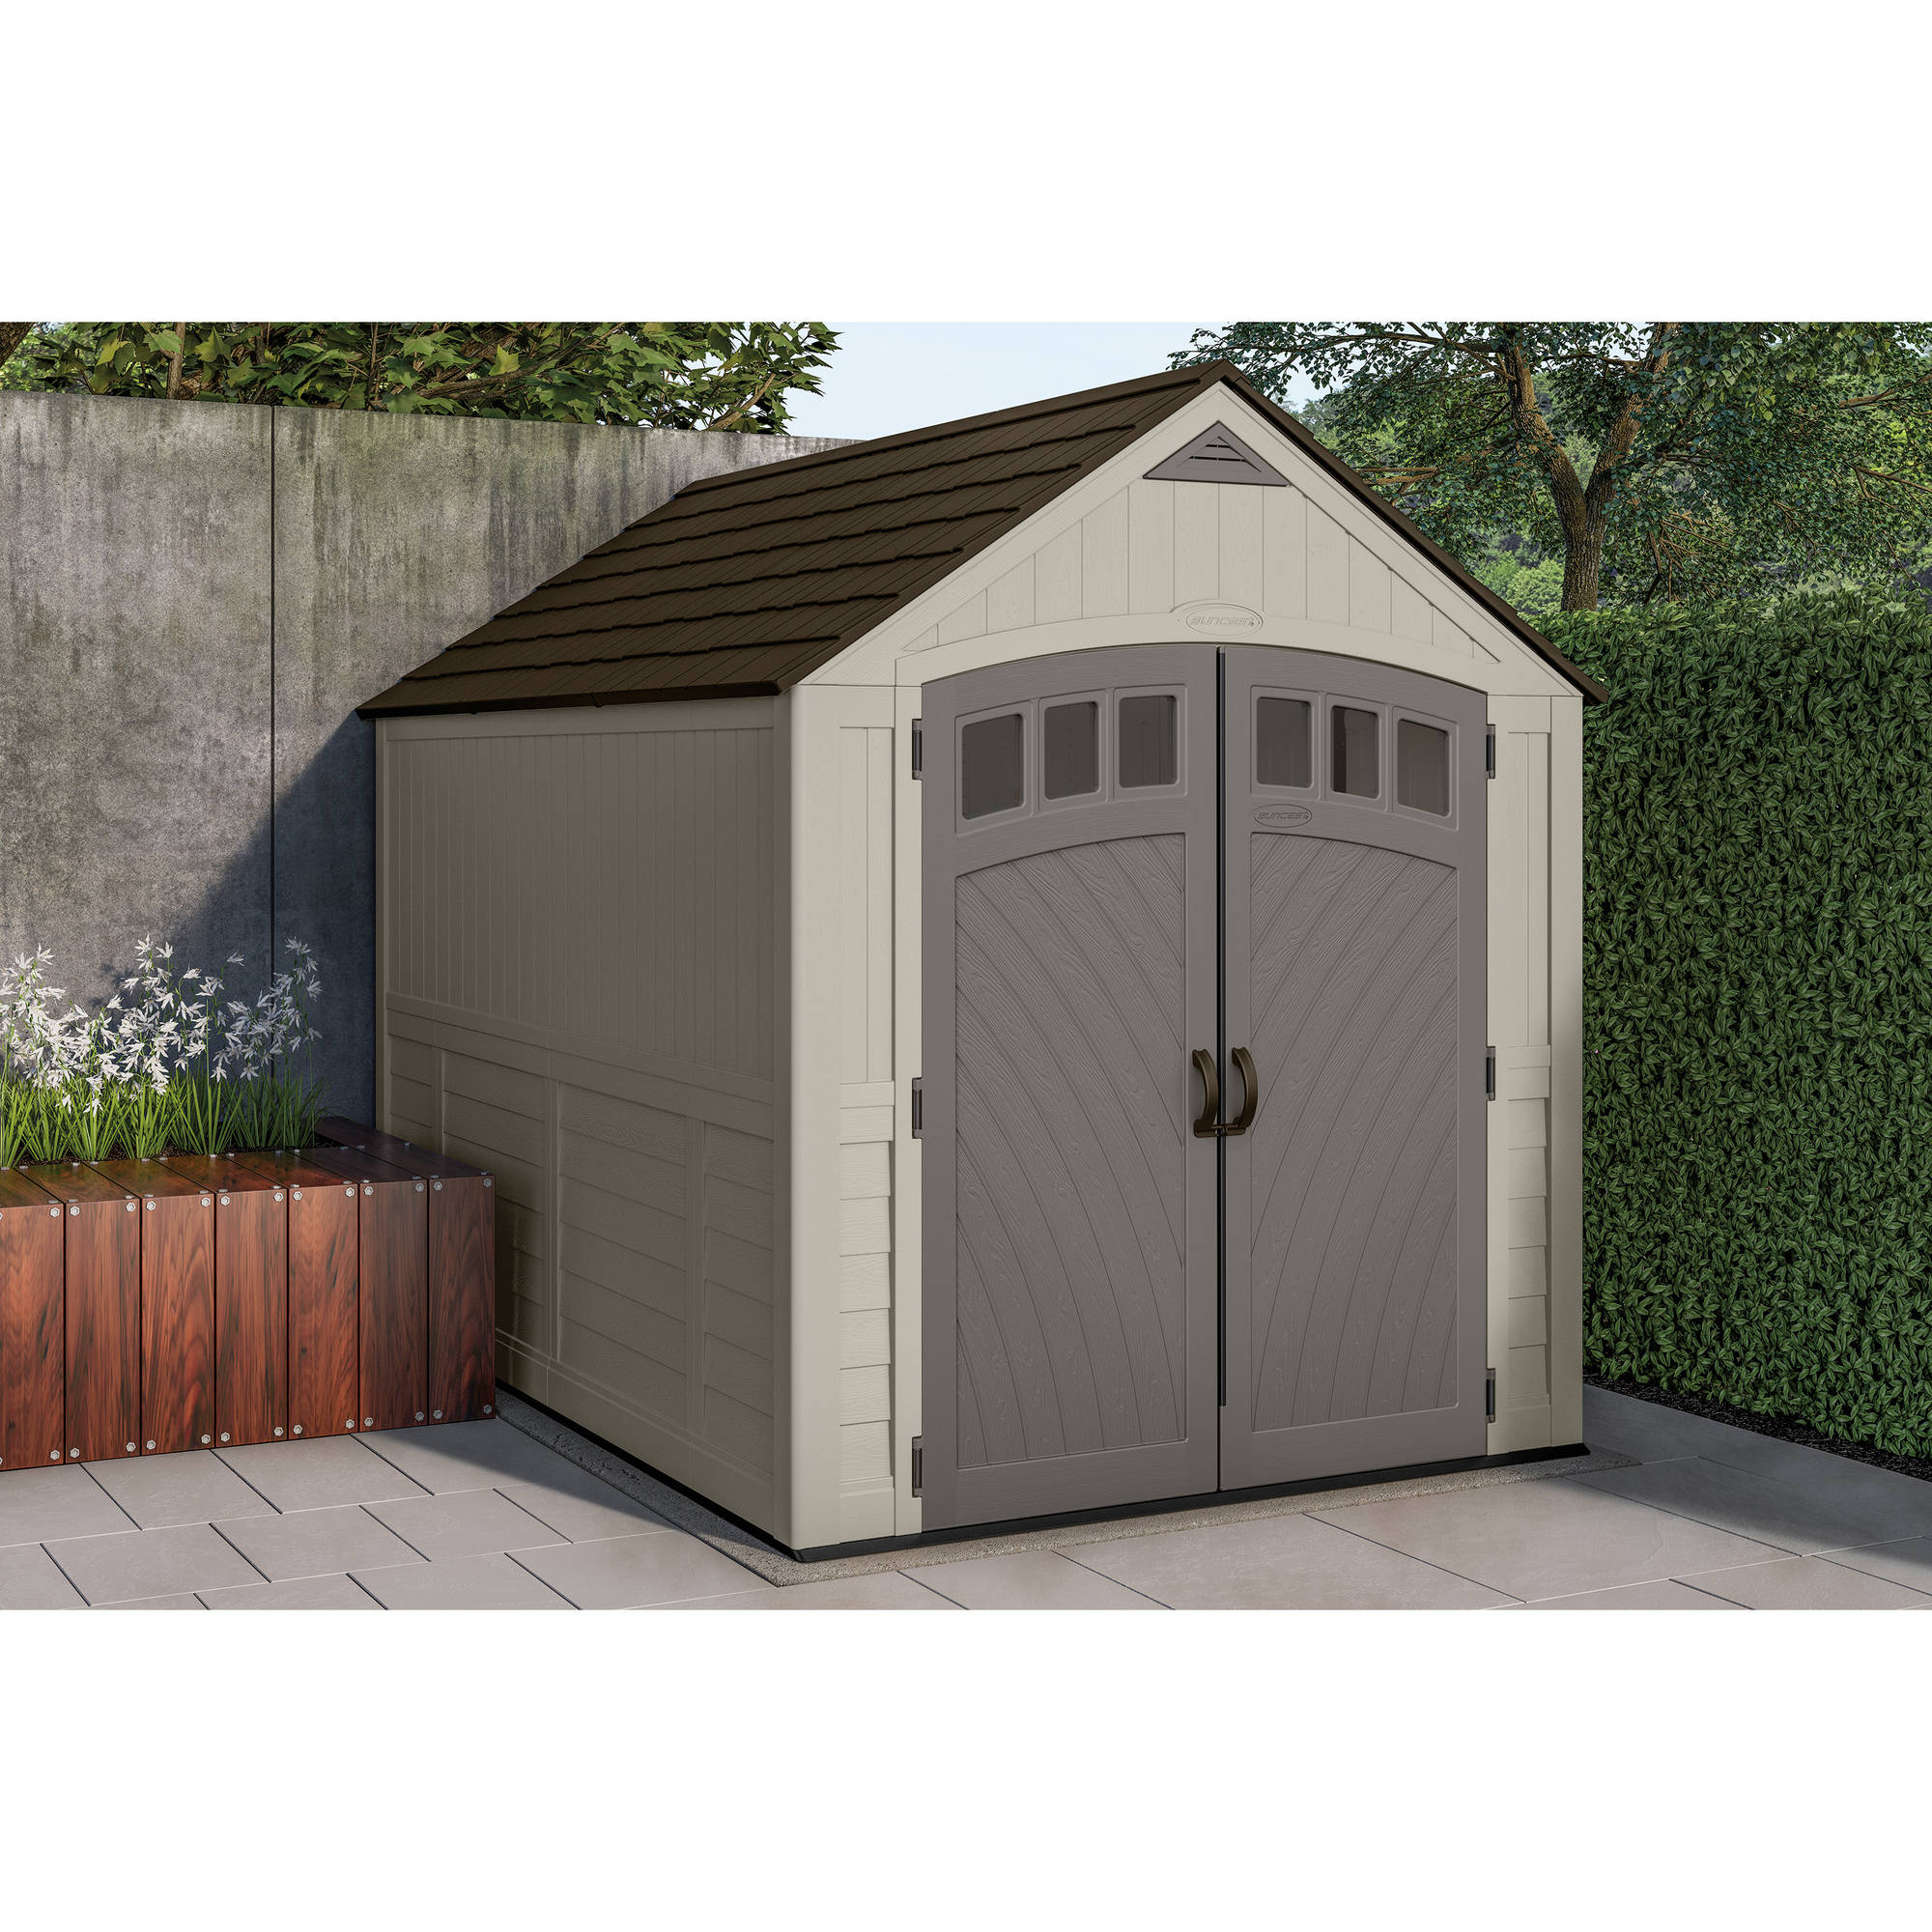 Suncast 7 x 10 Covington Storage Shed